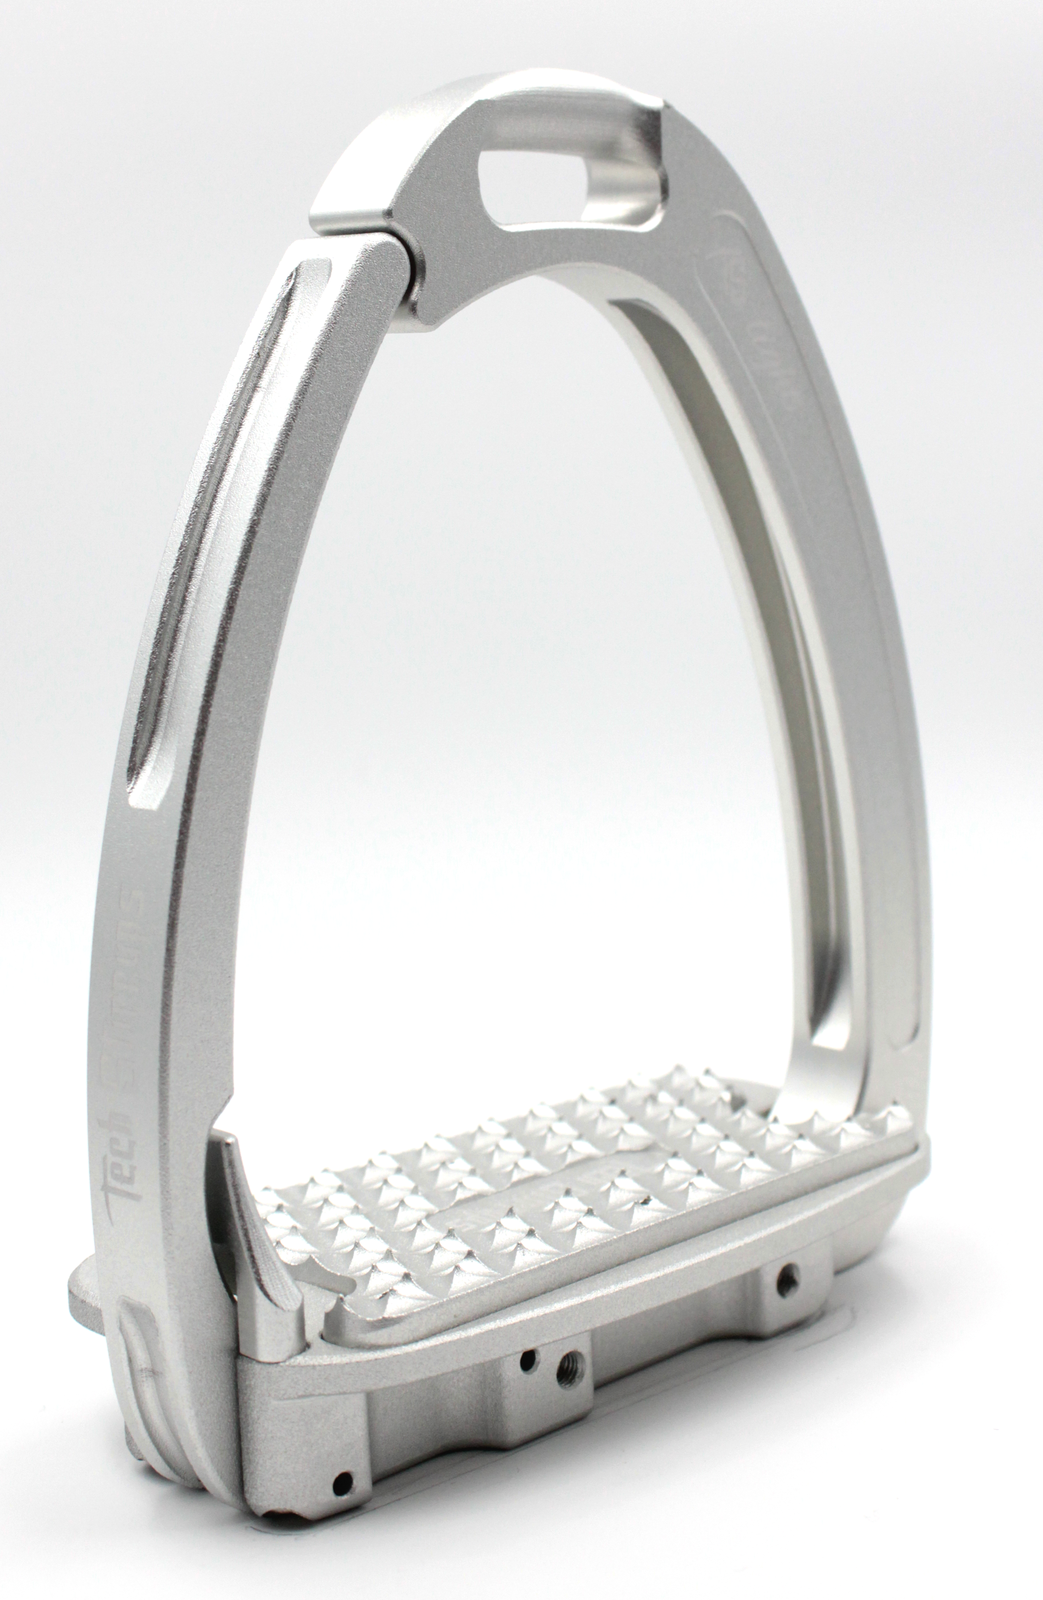 Tech Venice Light Safety Stirrups - Silver Silver (£257.50 Exc VAT & £309.0